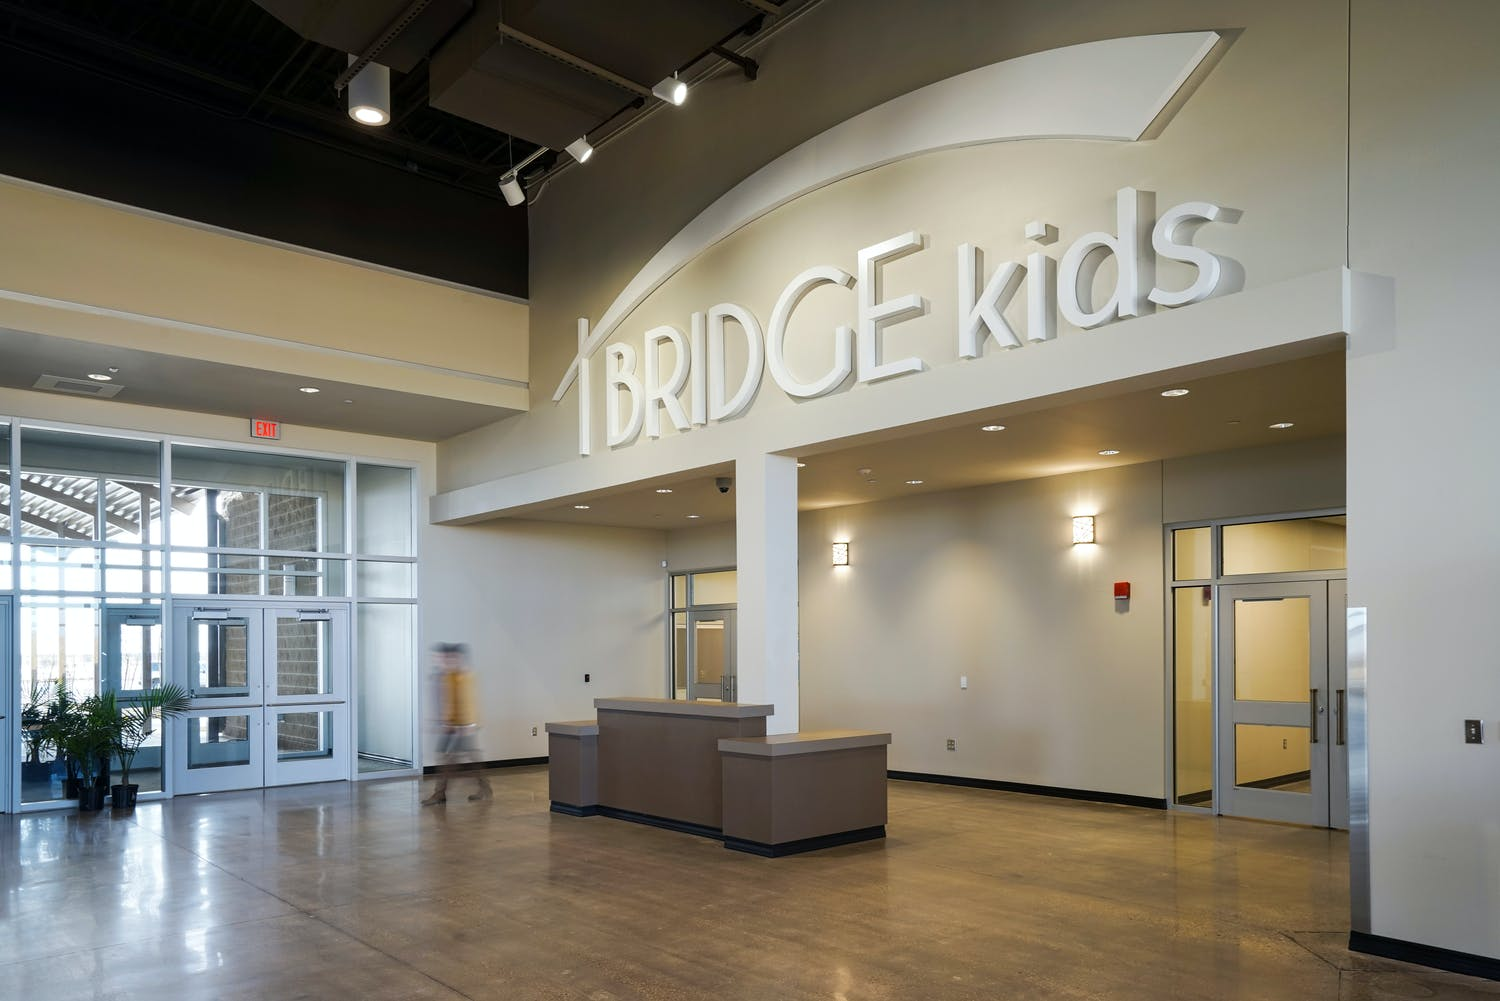 The Bridge Church New Worship Center Gallery Images